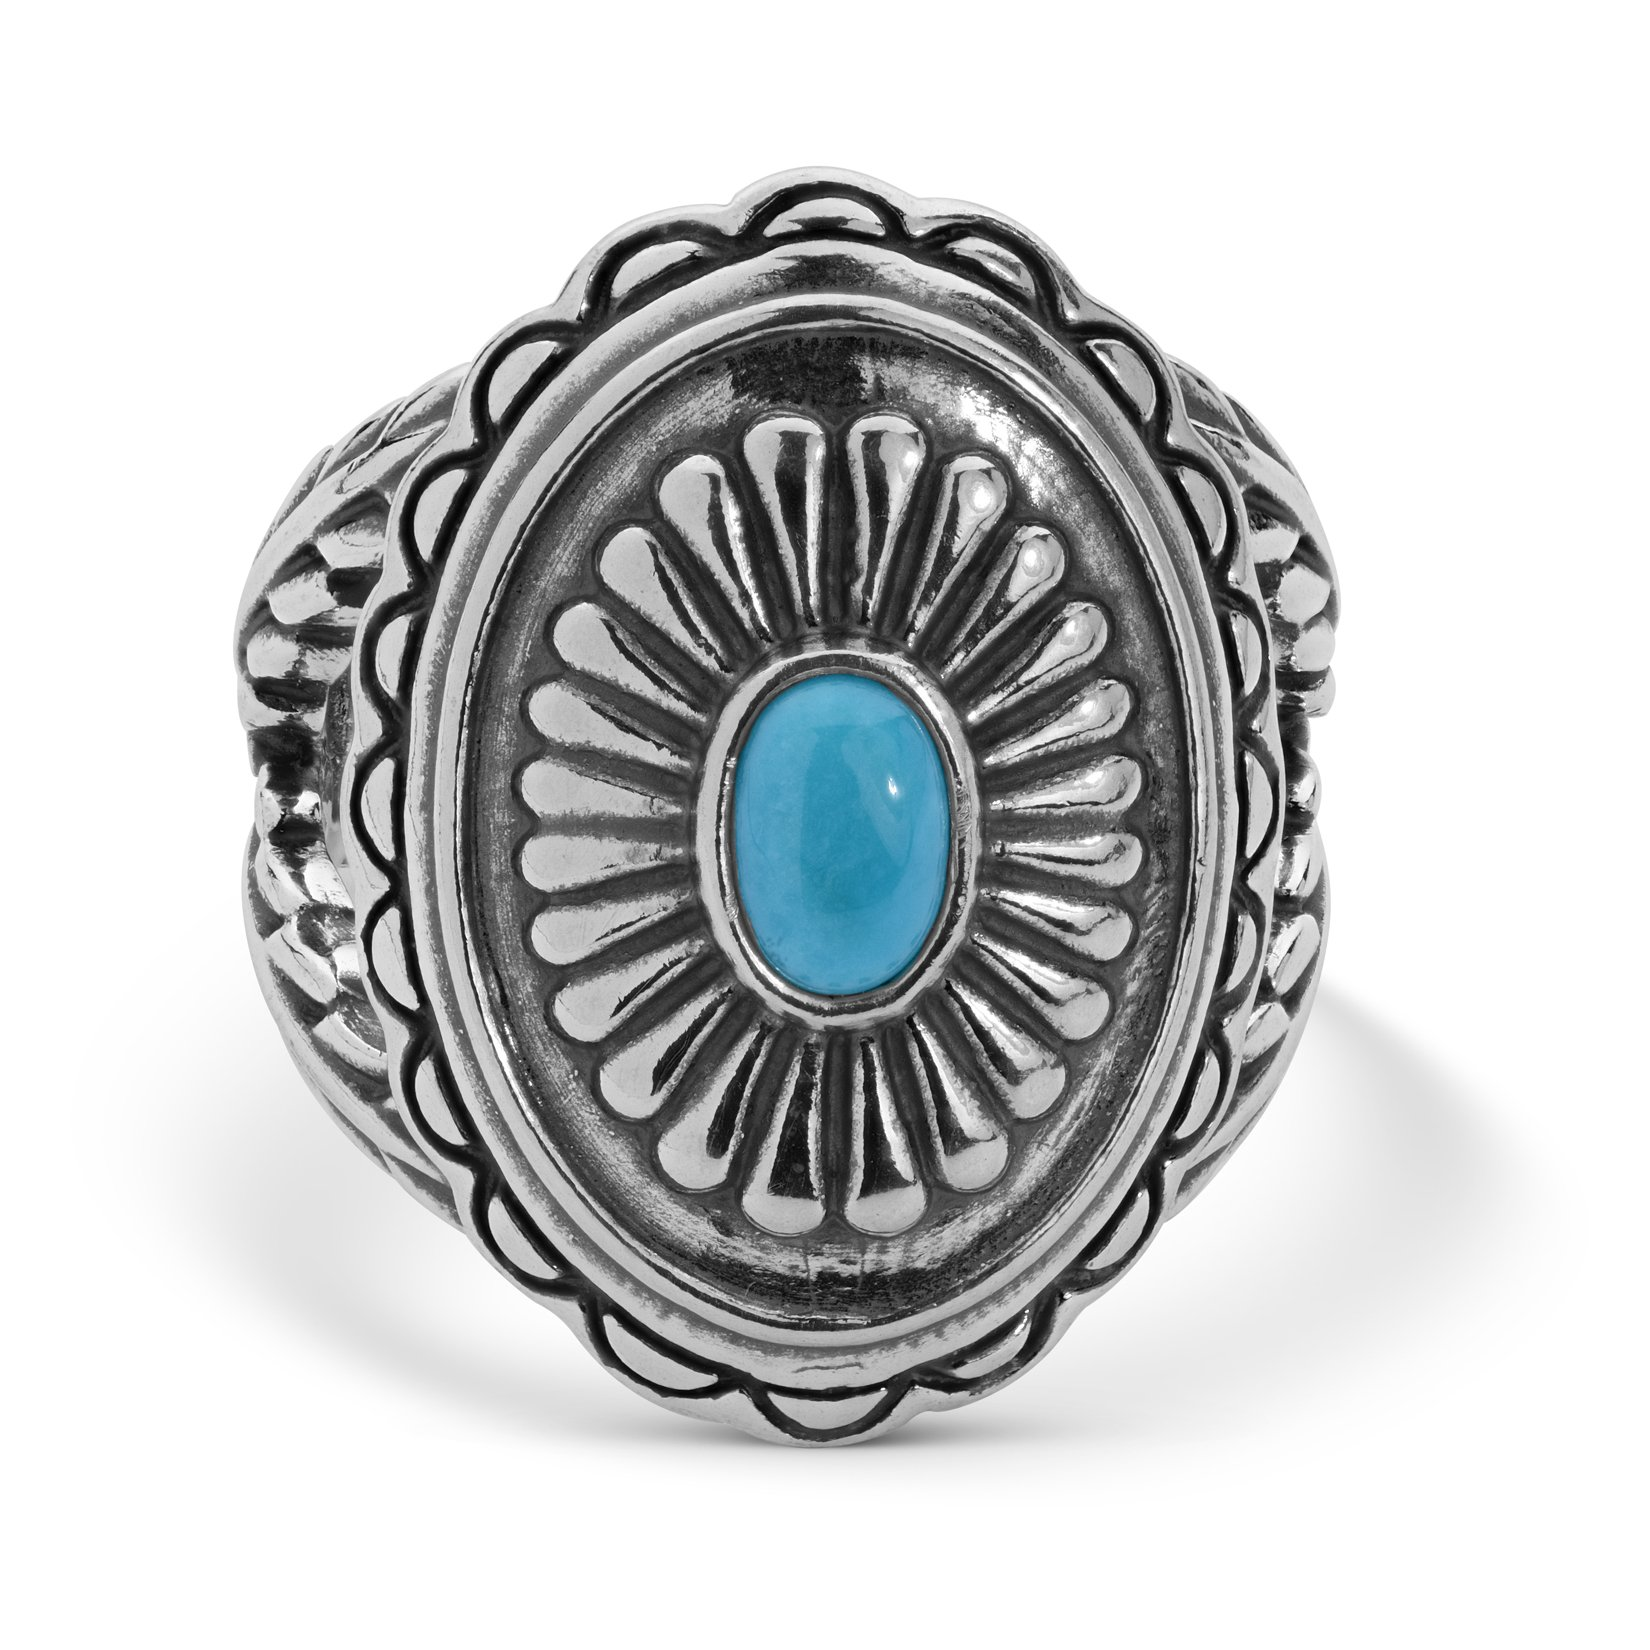 929 Silver Sleeping Beauty Concho Ring Size 8 by American West (Image #5)